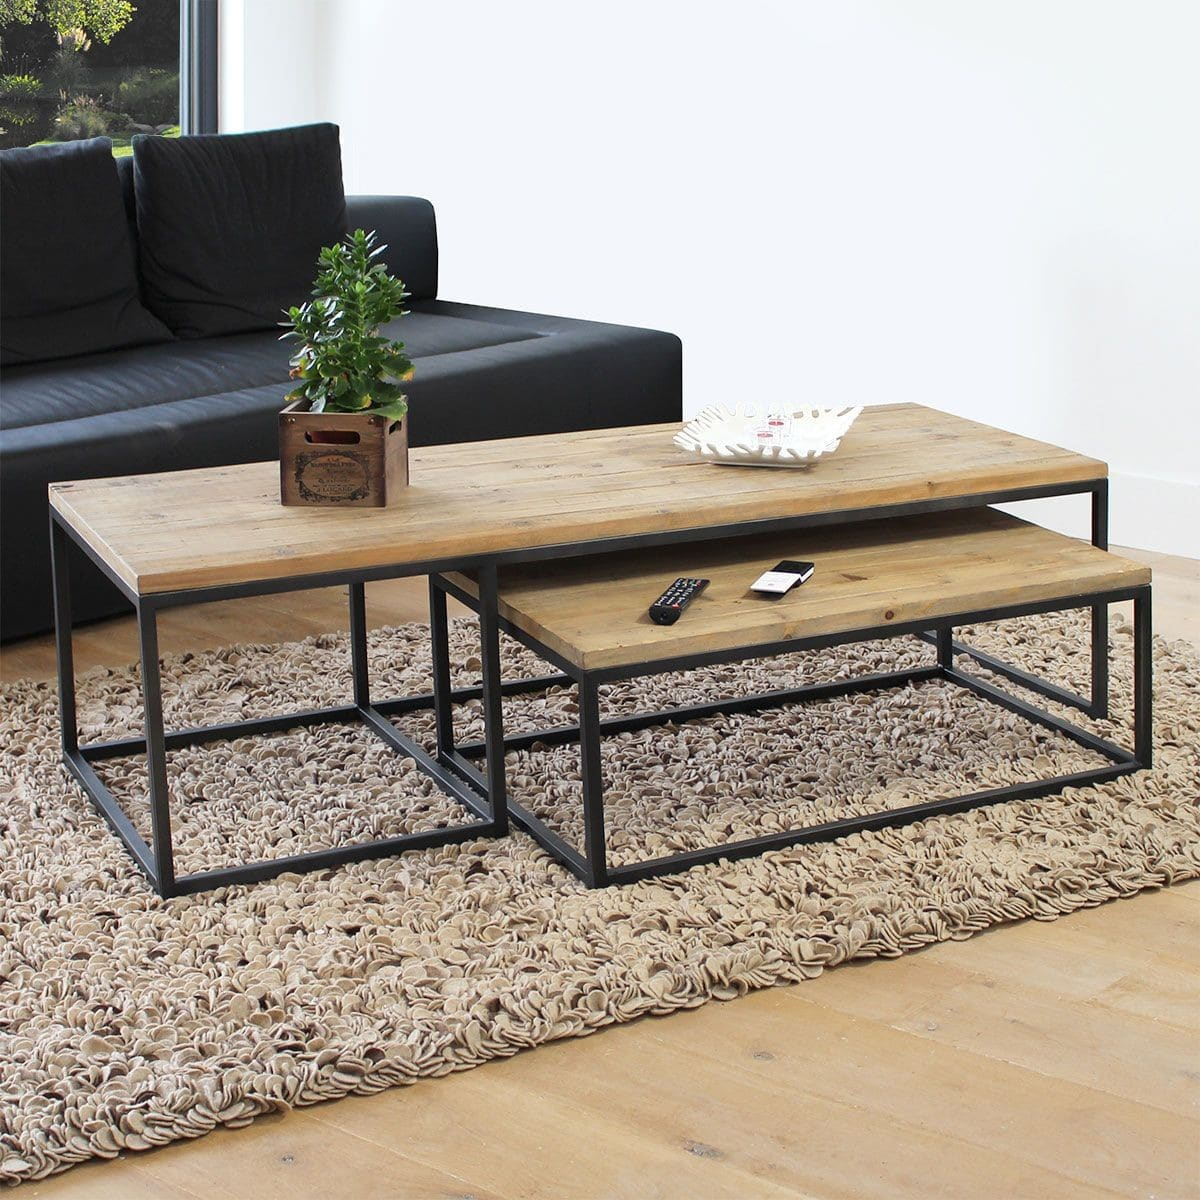 Table basse industrielle 50 mod¨les fous et surprenants